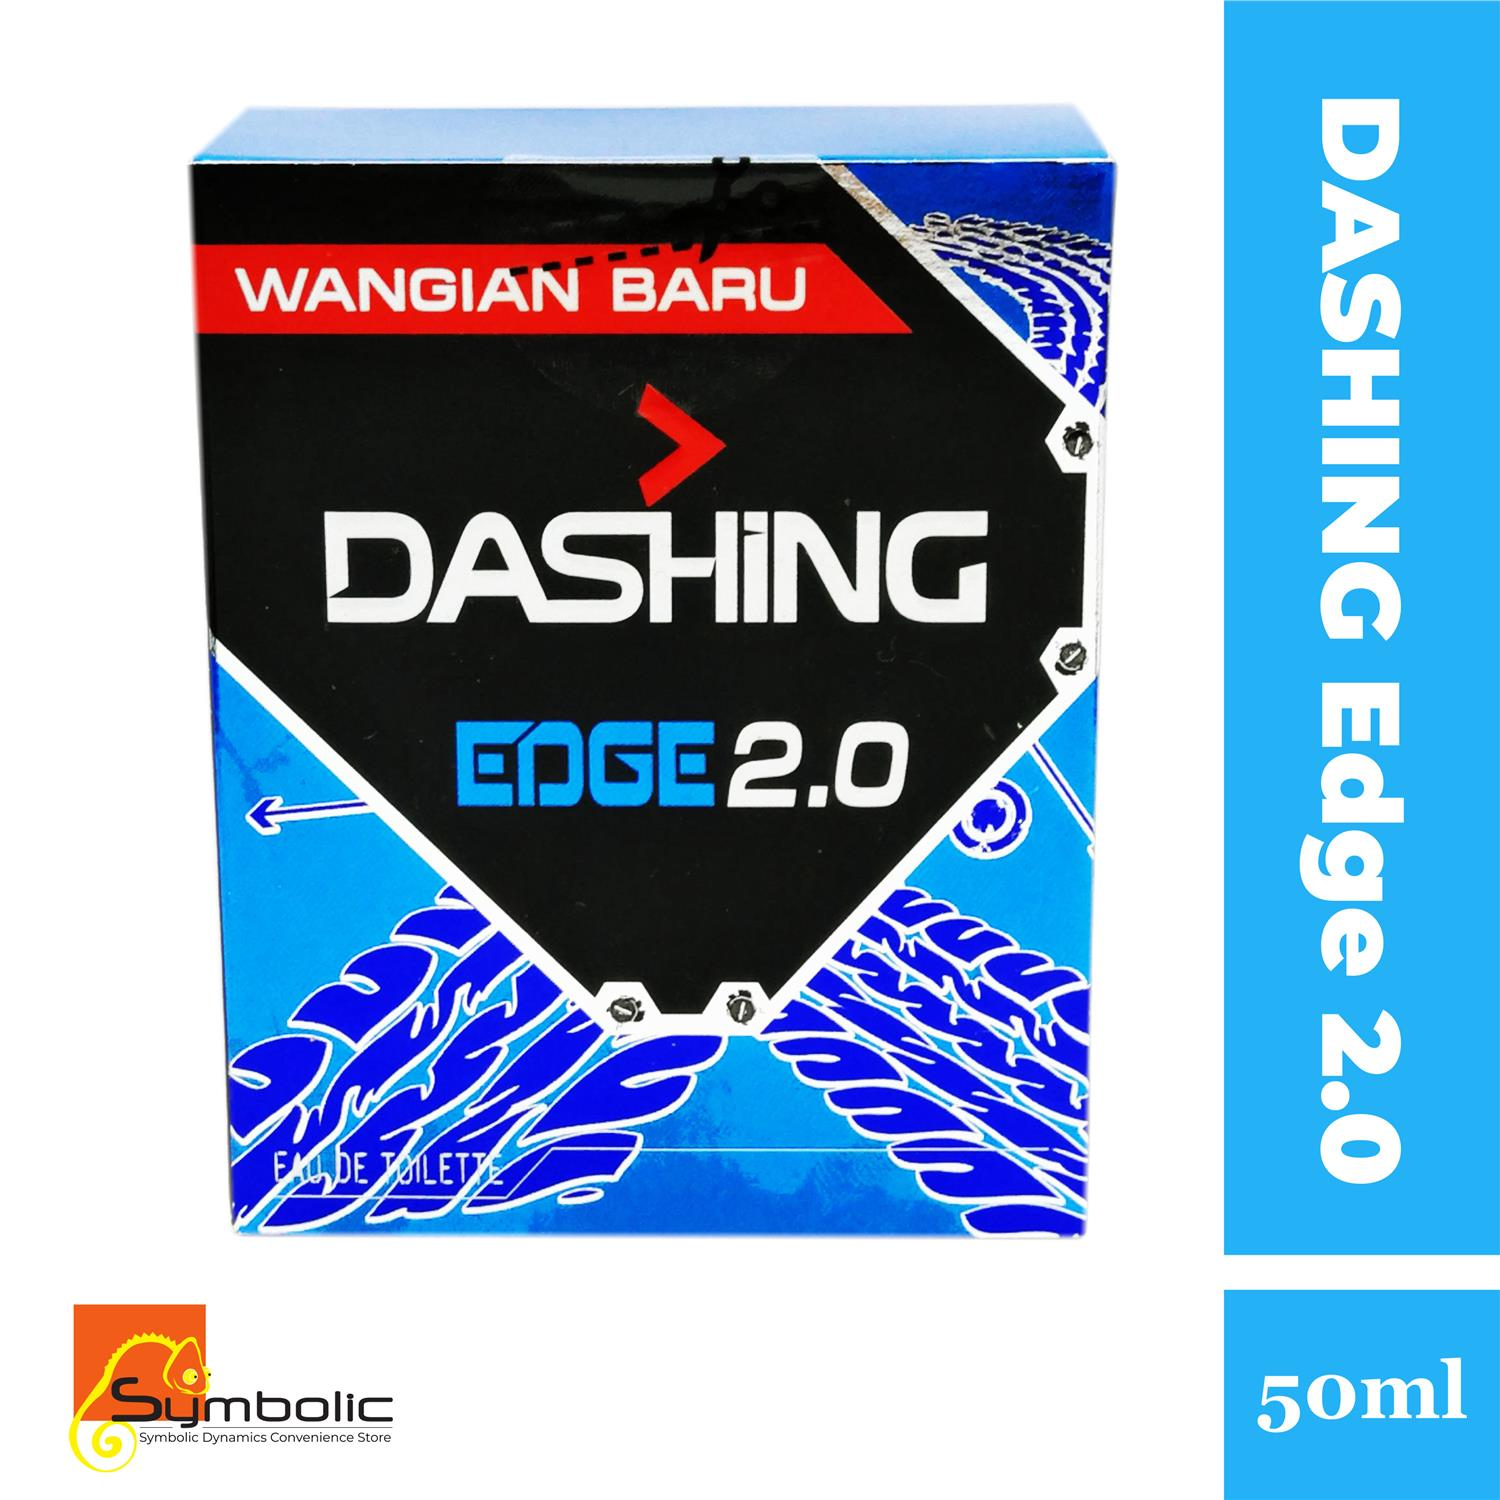 DASHING EDT EDGE 2.0